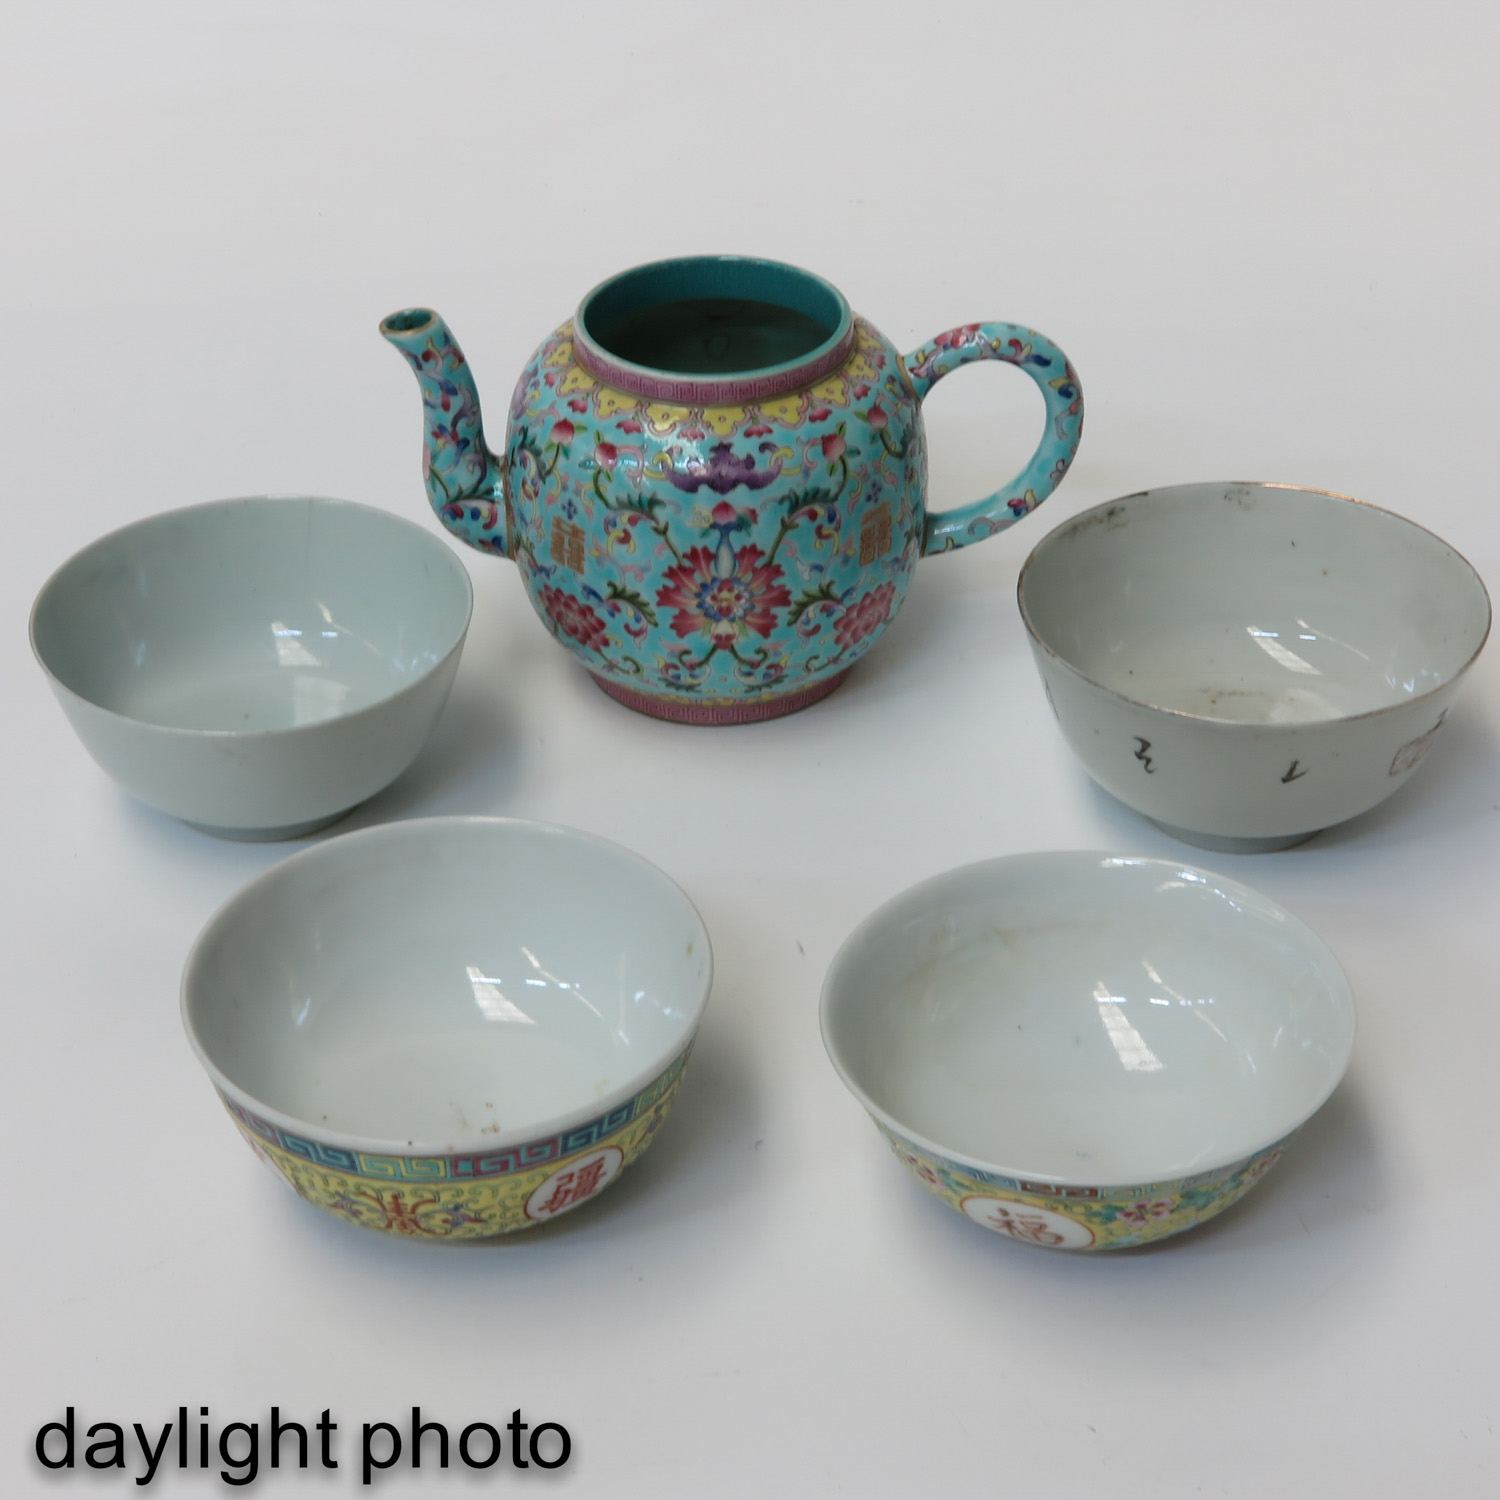 A Collection of Chinese Porcelain - Image 7 of 10